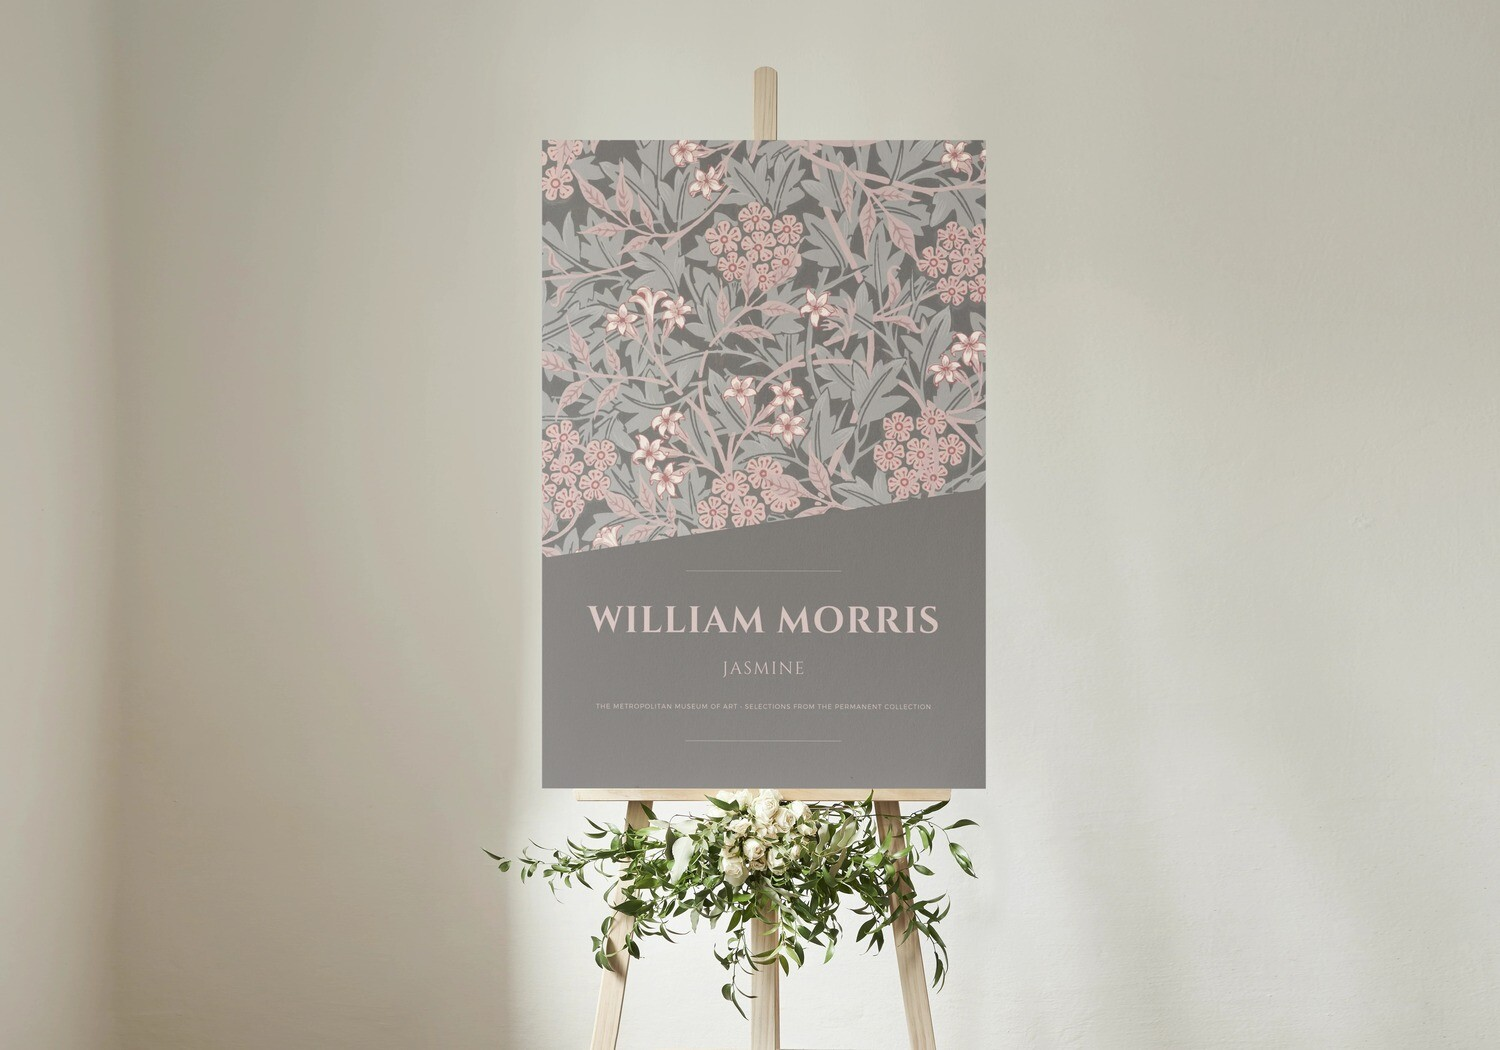 Jasmine - William Morris (Art Print)